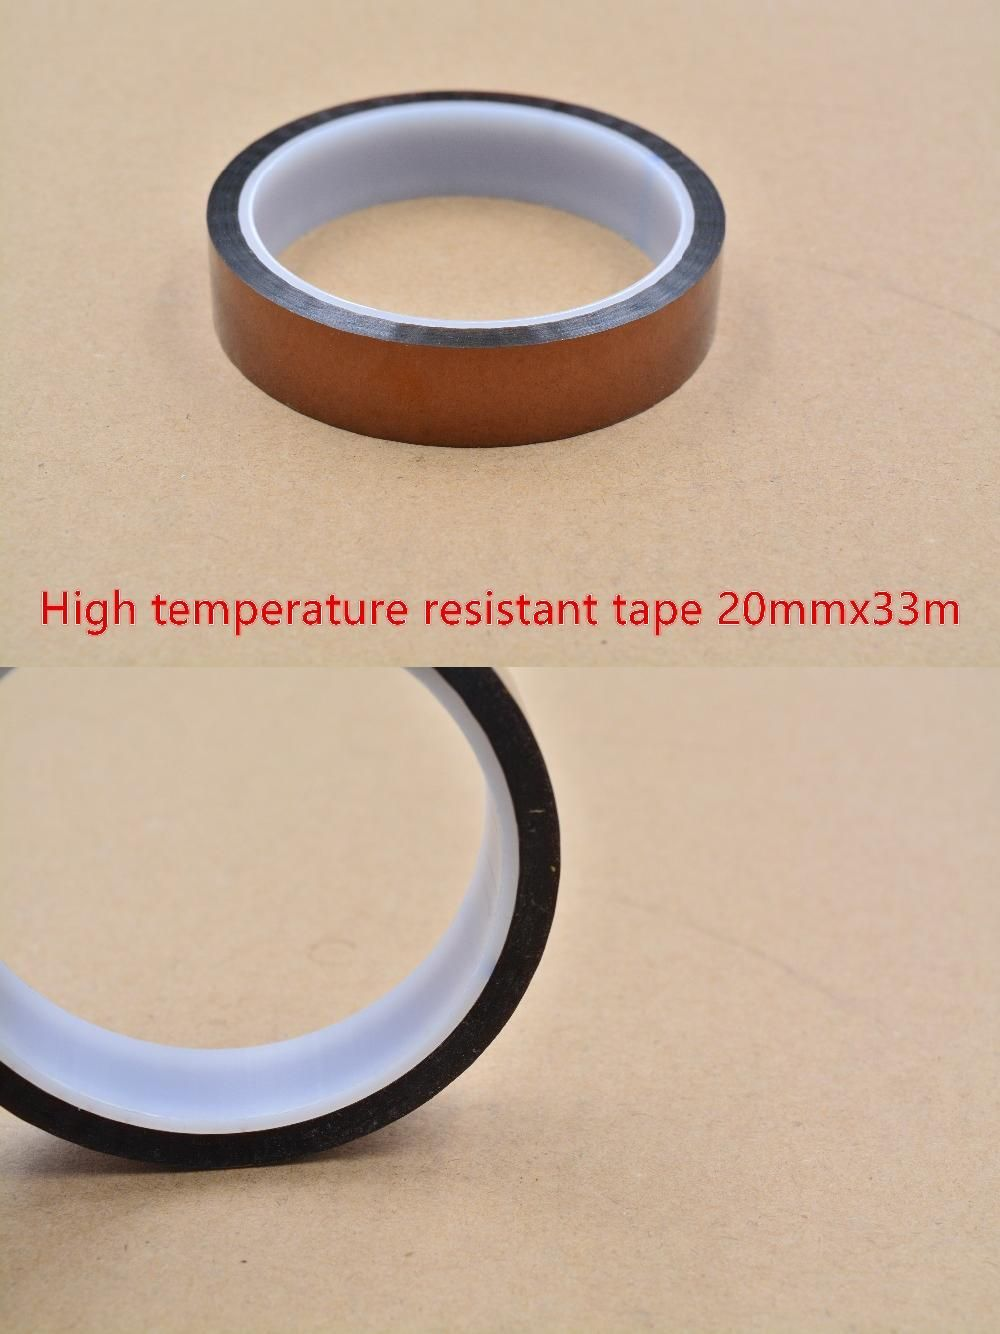 1.86US $ |LINK CNC 3d printer plate heat resistant high temperature polyimide adhesive insulation solder mask 20mmx33m thickness 0.05mm|3d printer adhesive|thick  - AliExpress